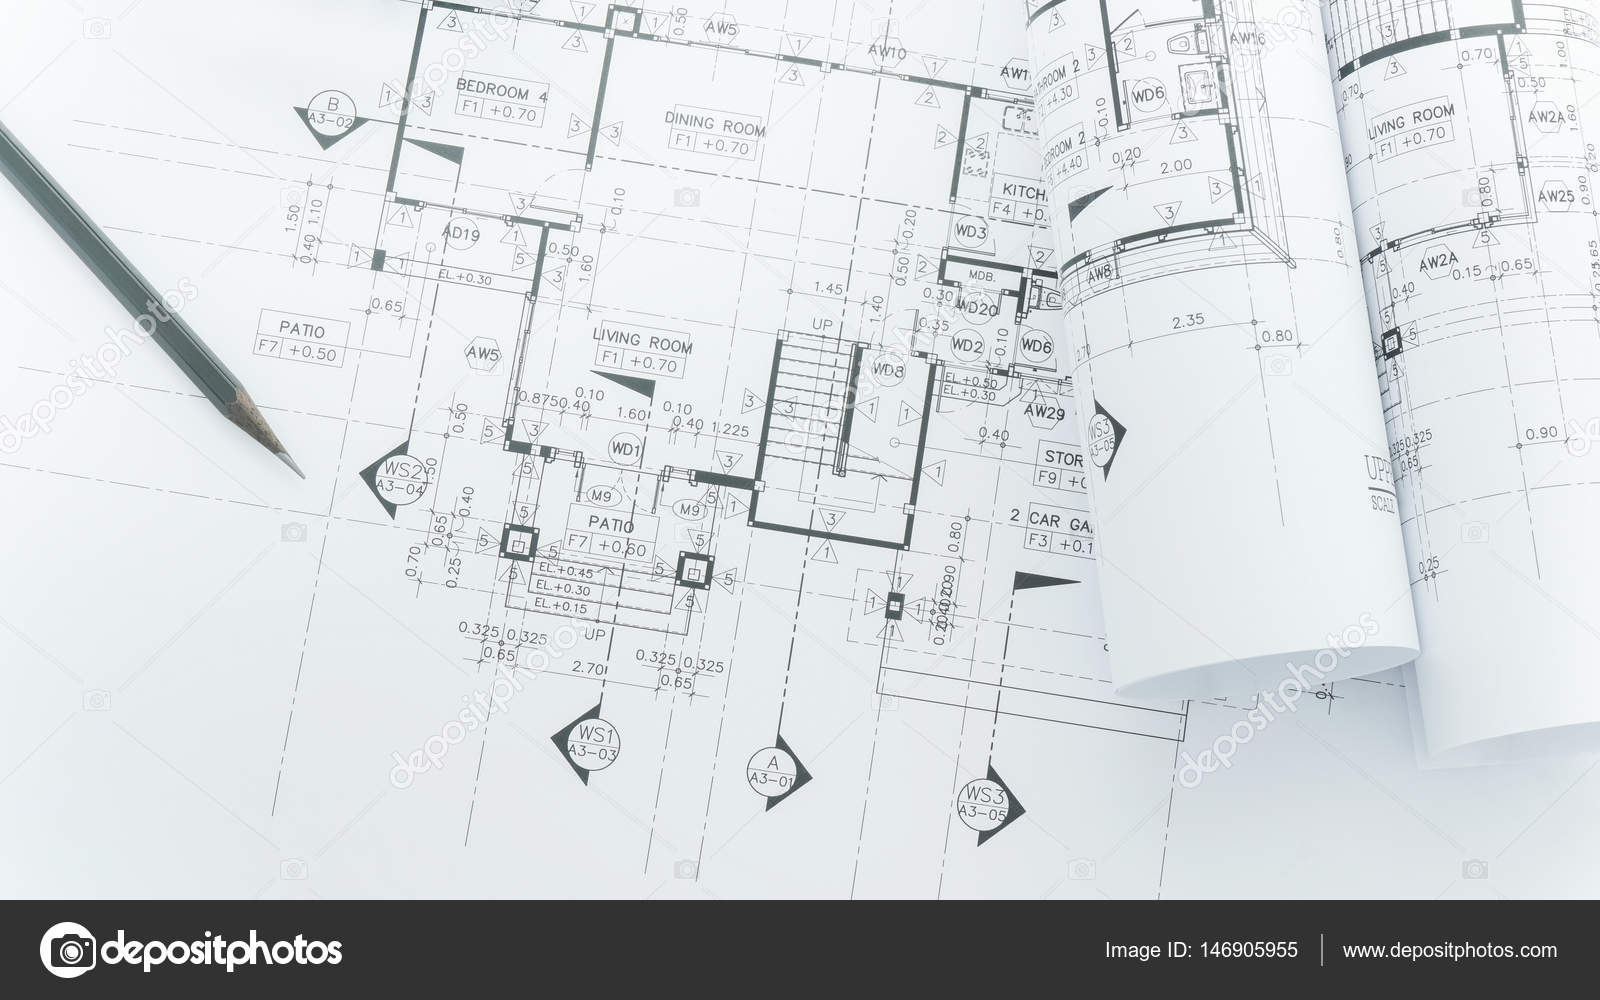 Architects workplace architectural blueprints with measuring tape architects workplace architectural blueprints with measuring tape safety helmet and tools on table top view photo by worldwidestock malvernweather